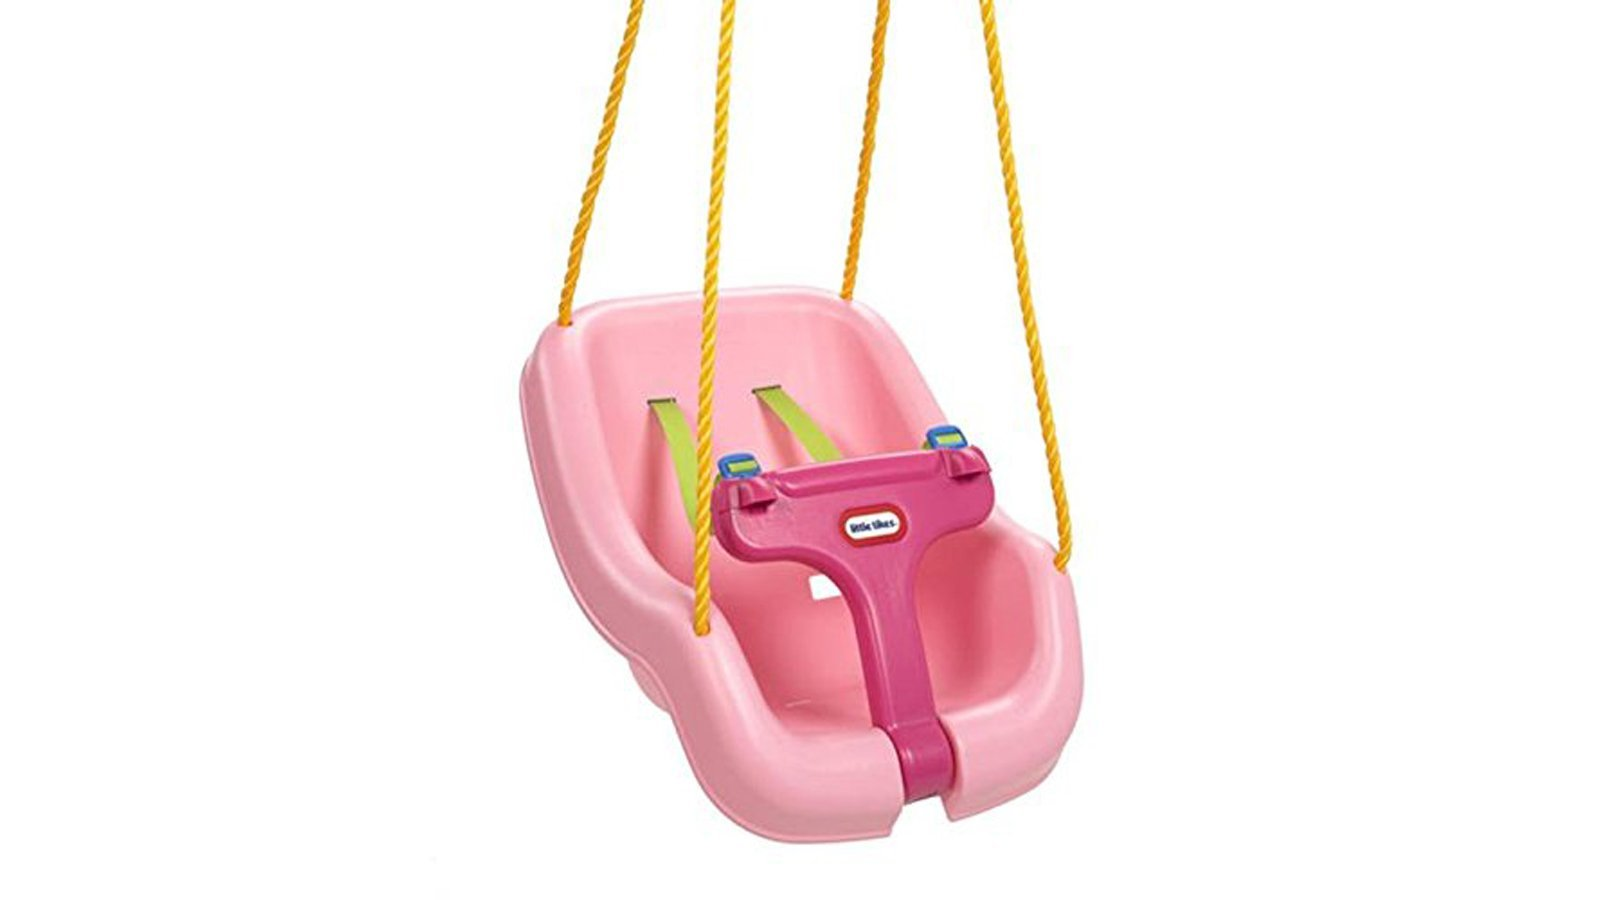 Little Tikes is voluntarily recalling 540,000 toddler swings after 140 reports of the swing breaking, posing a fall hazard. There have been 39 reports of injuries, including two children with broken arms.